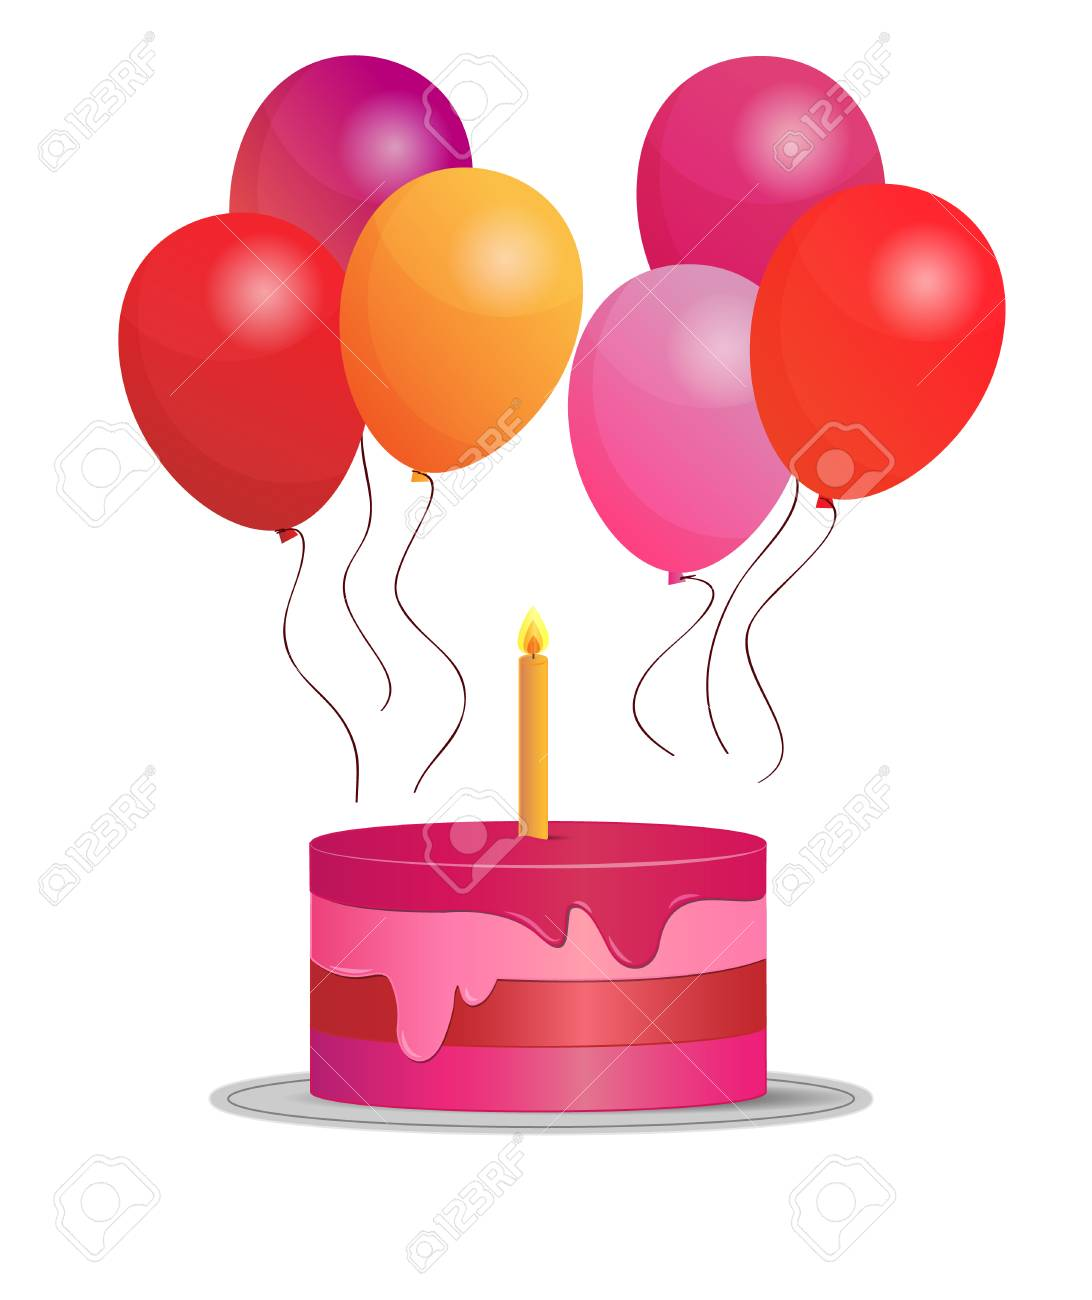 Simple Illustration Of Birthday Cake With Balloons Stock Vector